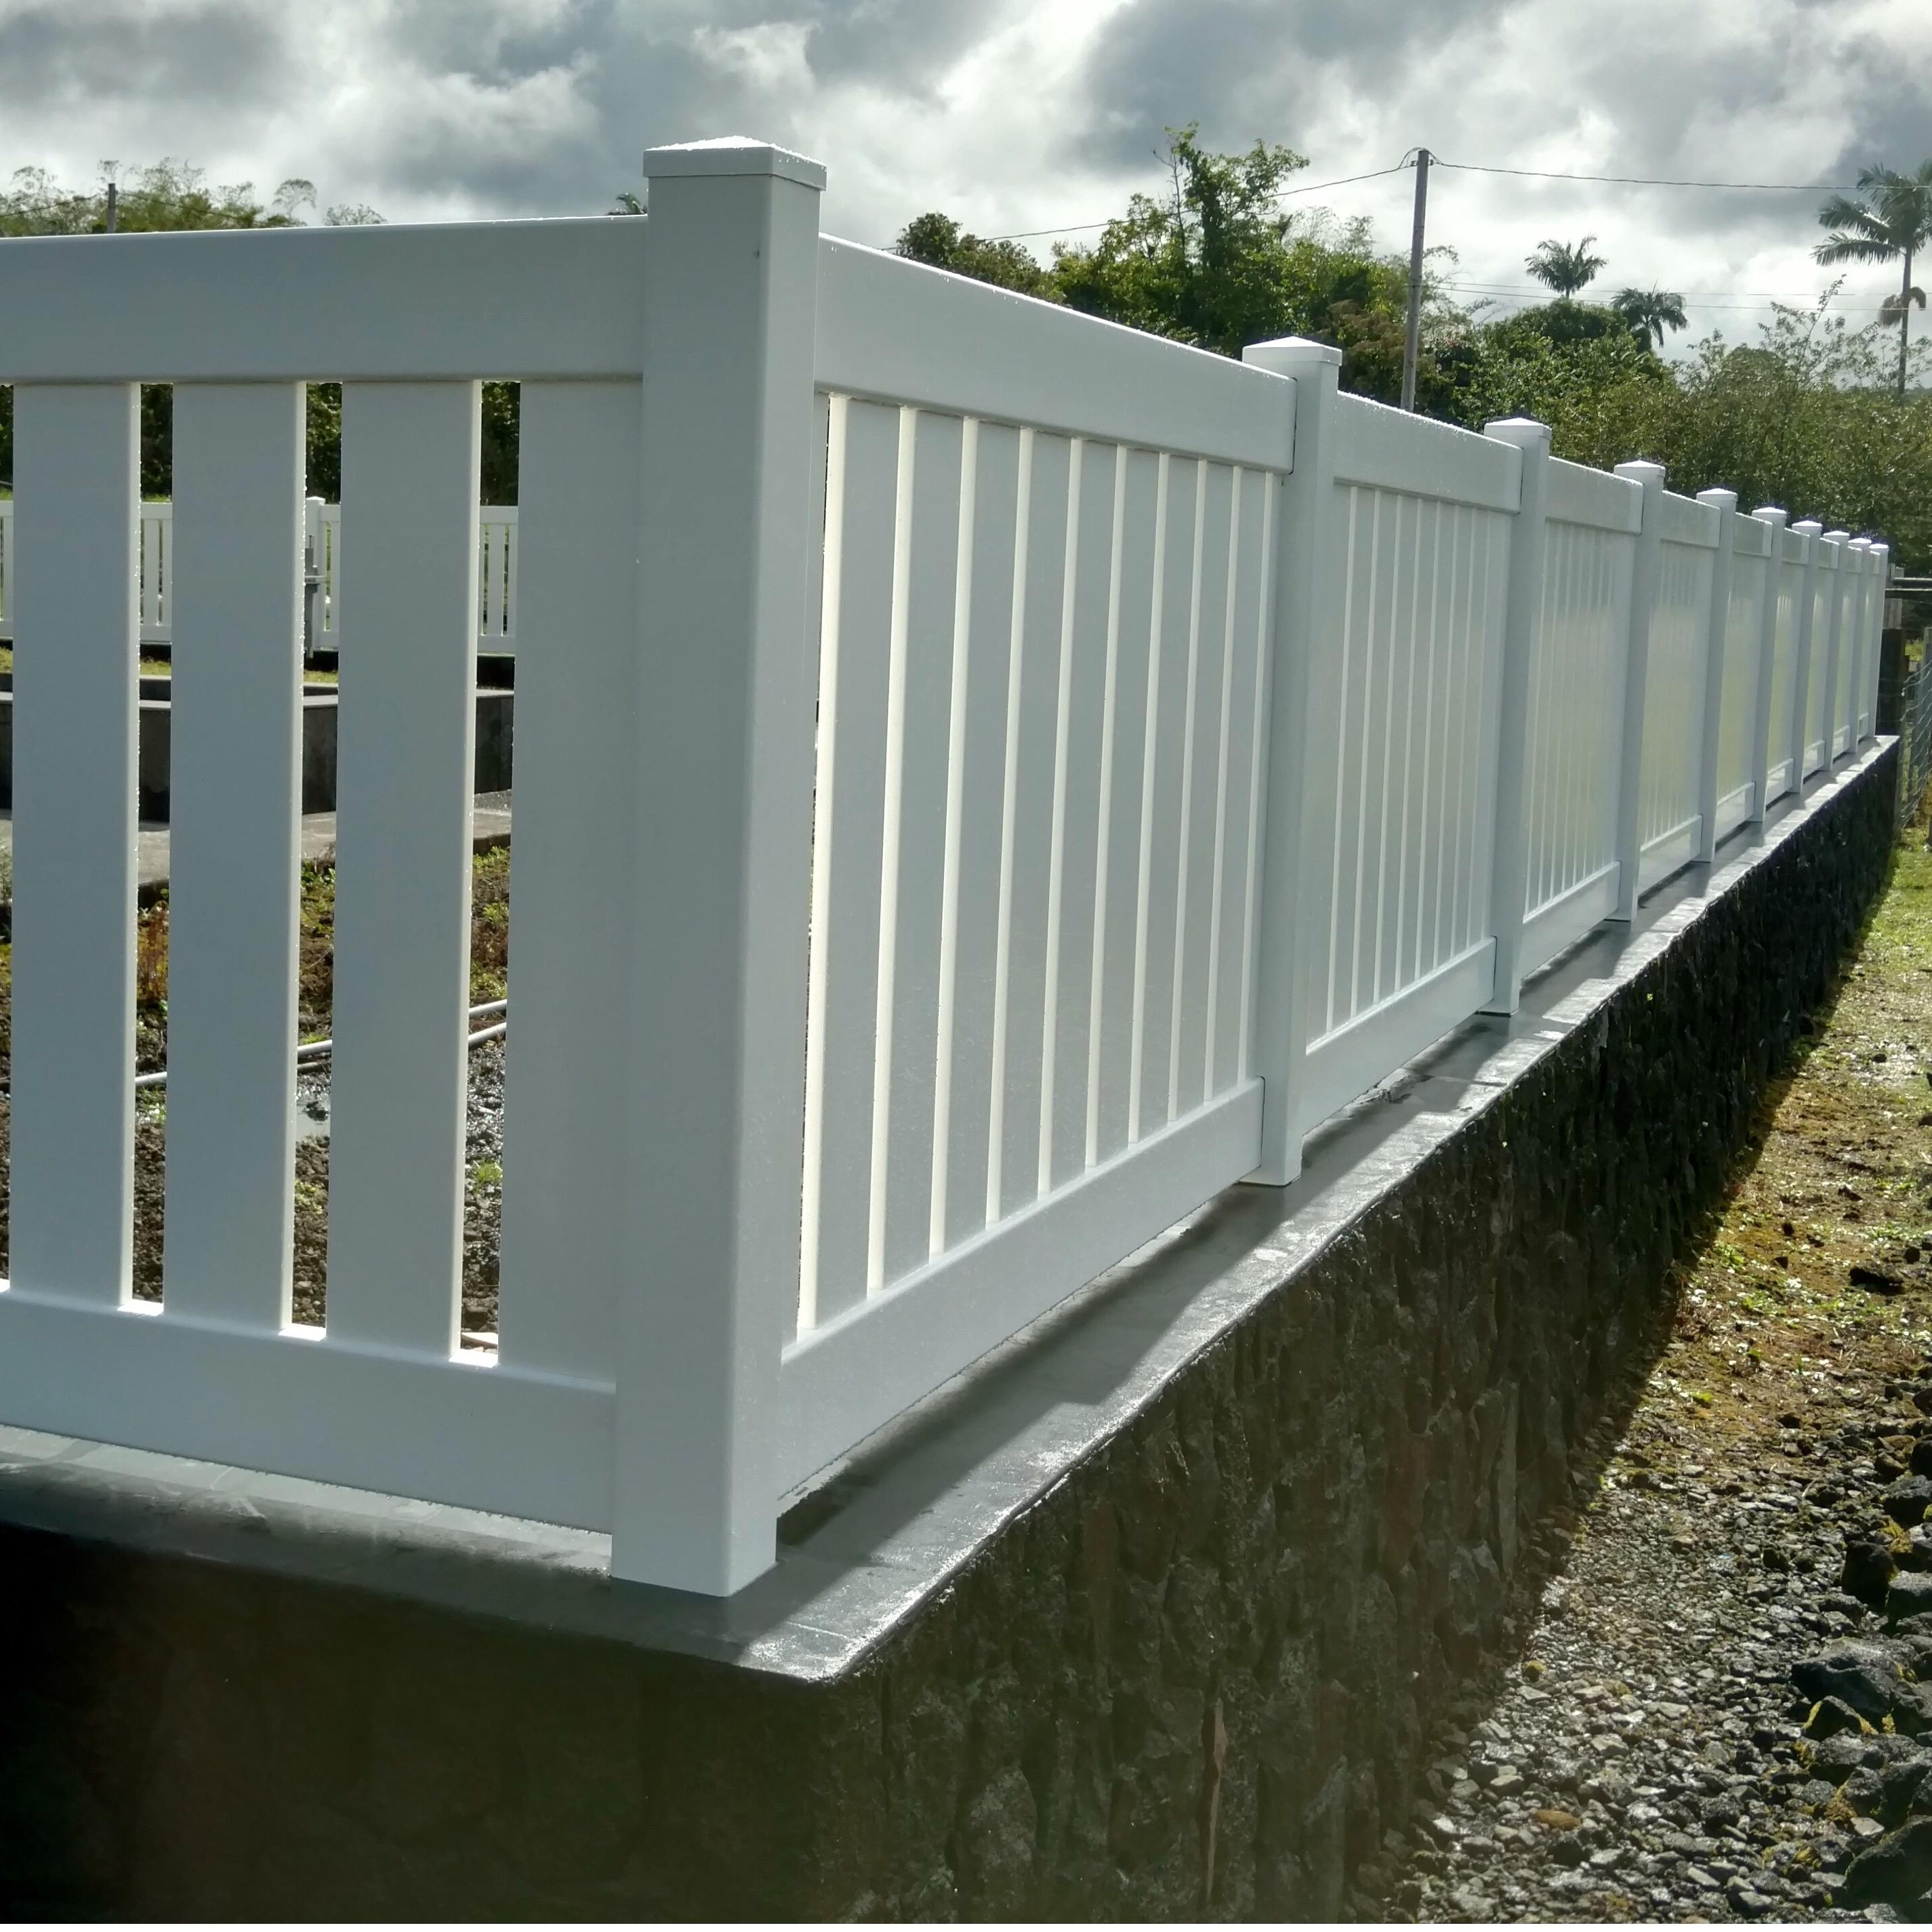 Andrew's Fencing LLC - Mountain View, HI - Fence Installation & Repair